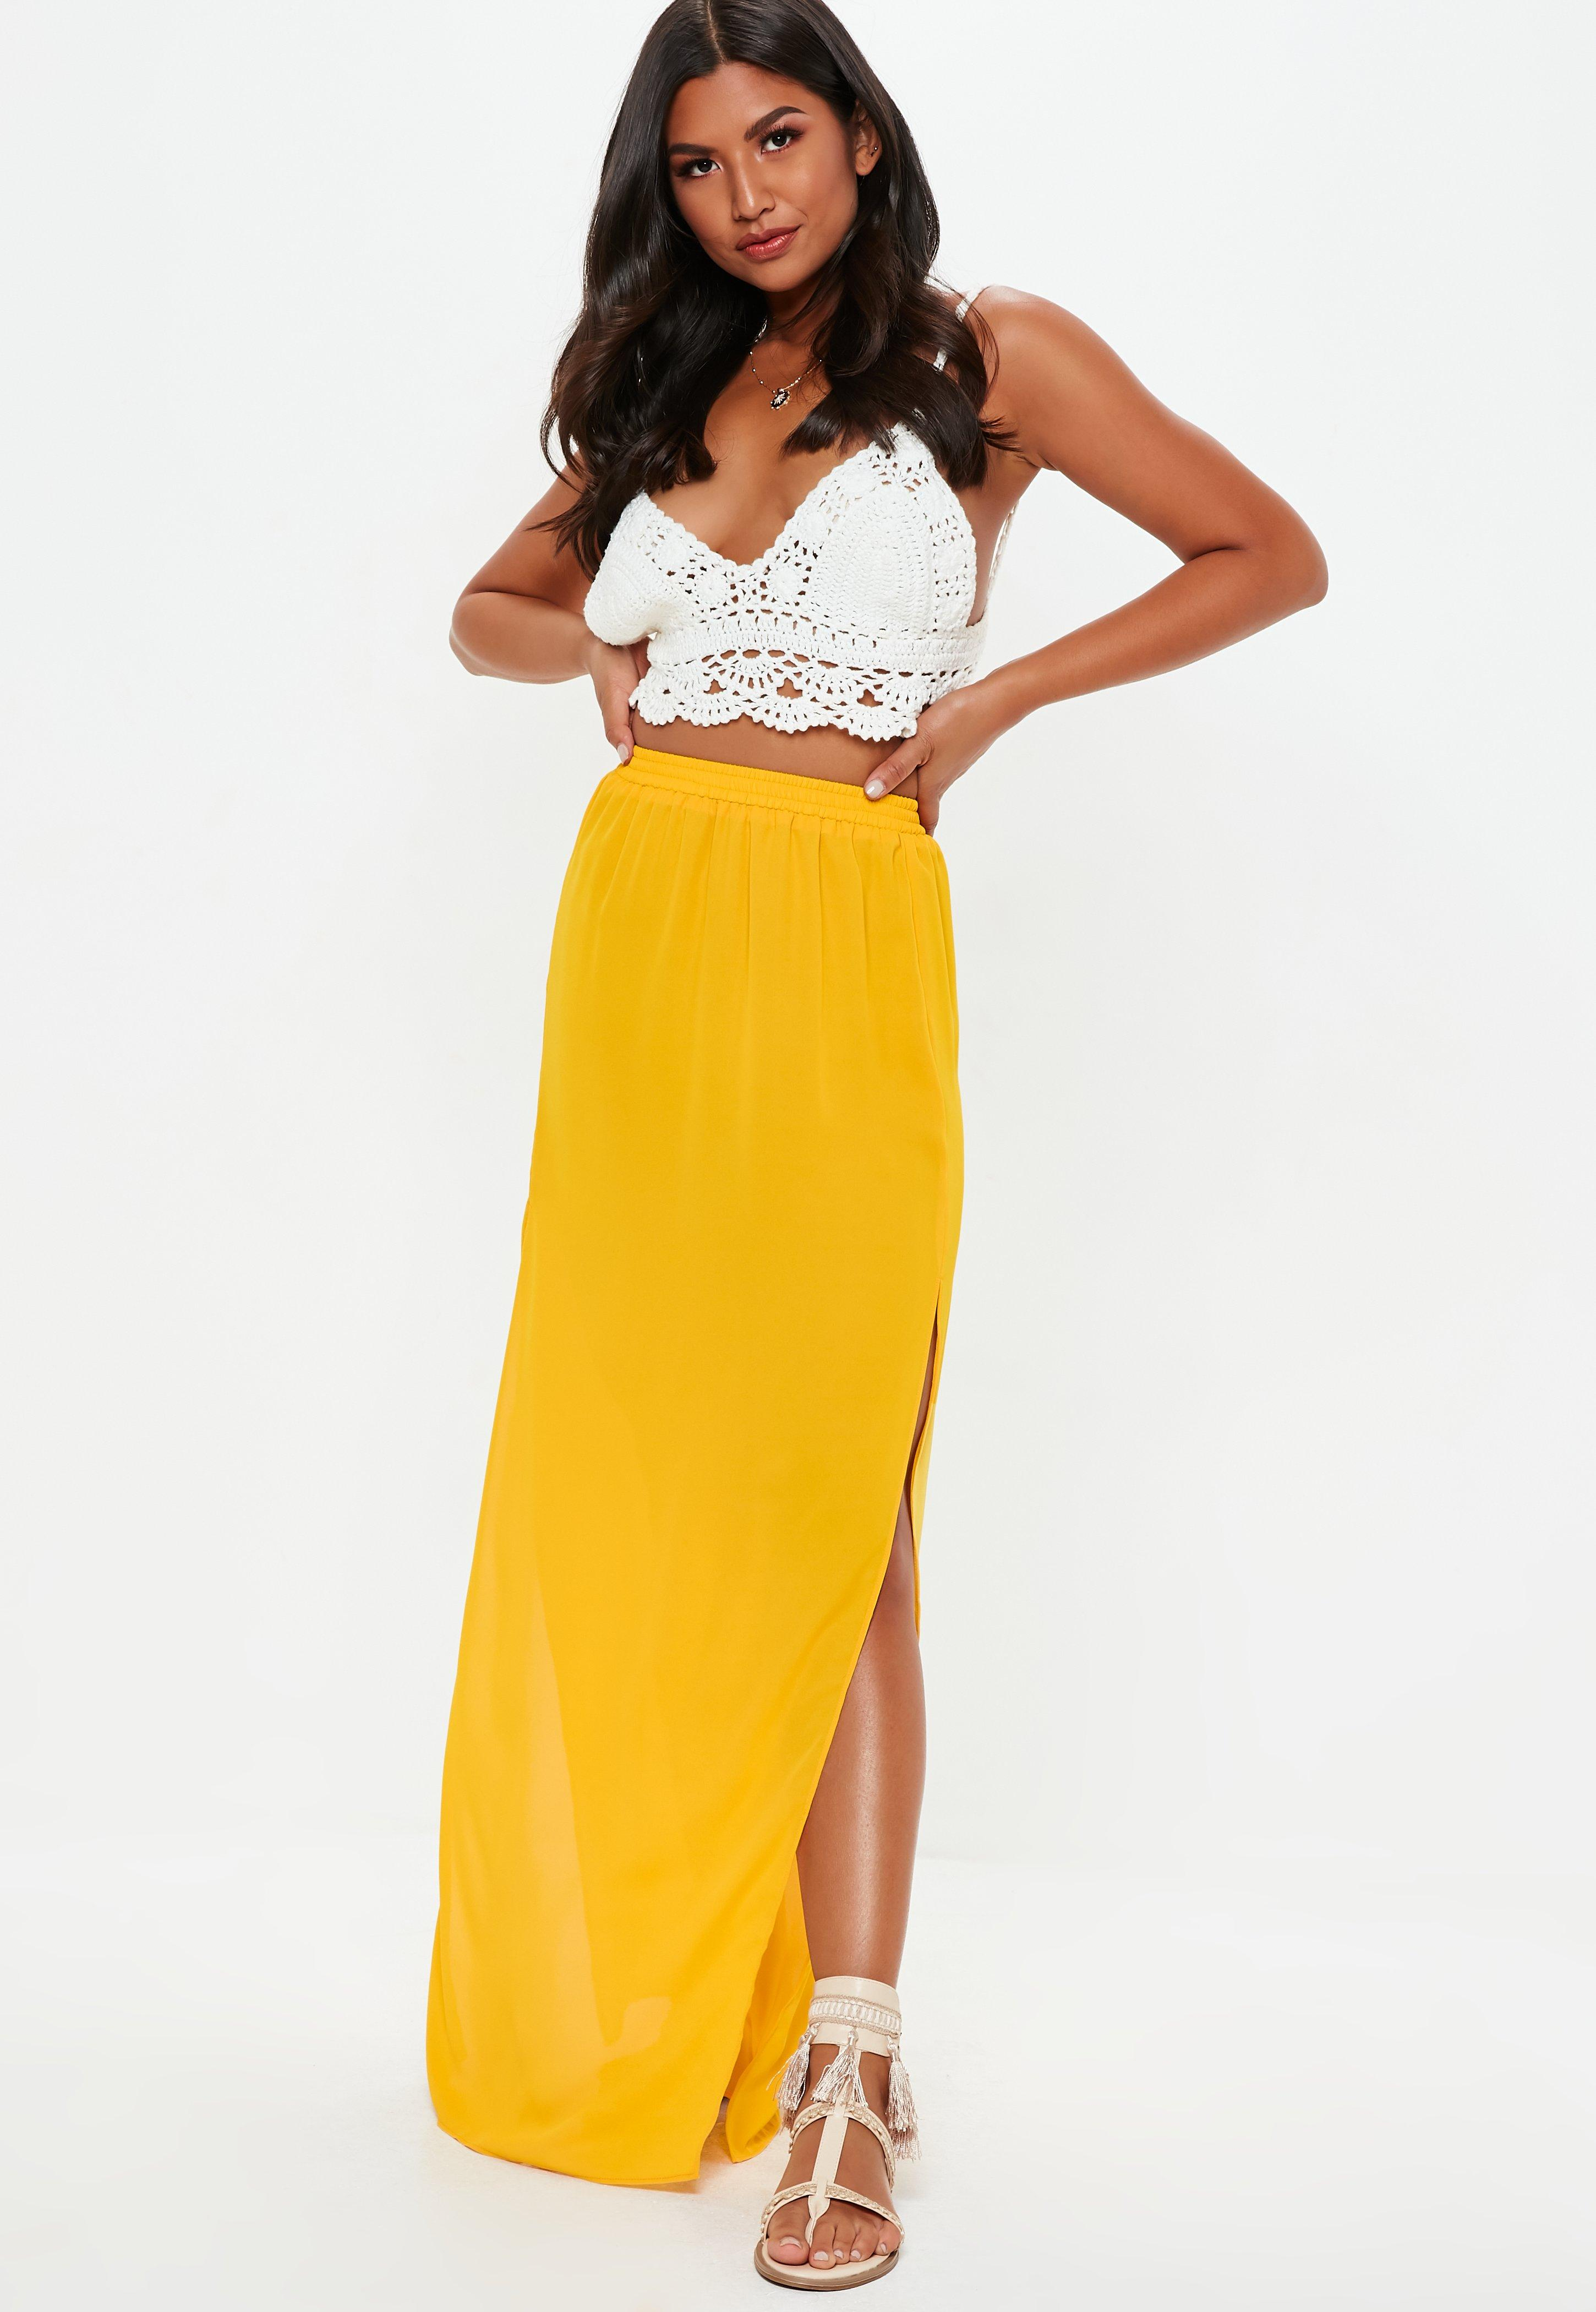 87d32a7ac749a Skirts | Winter Skirts for Women Online UK - Missguided